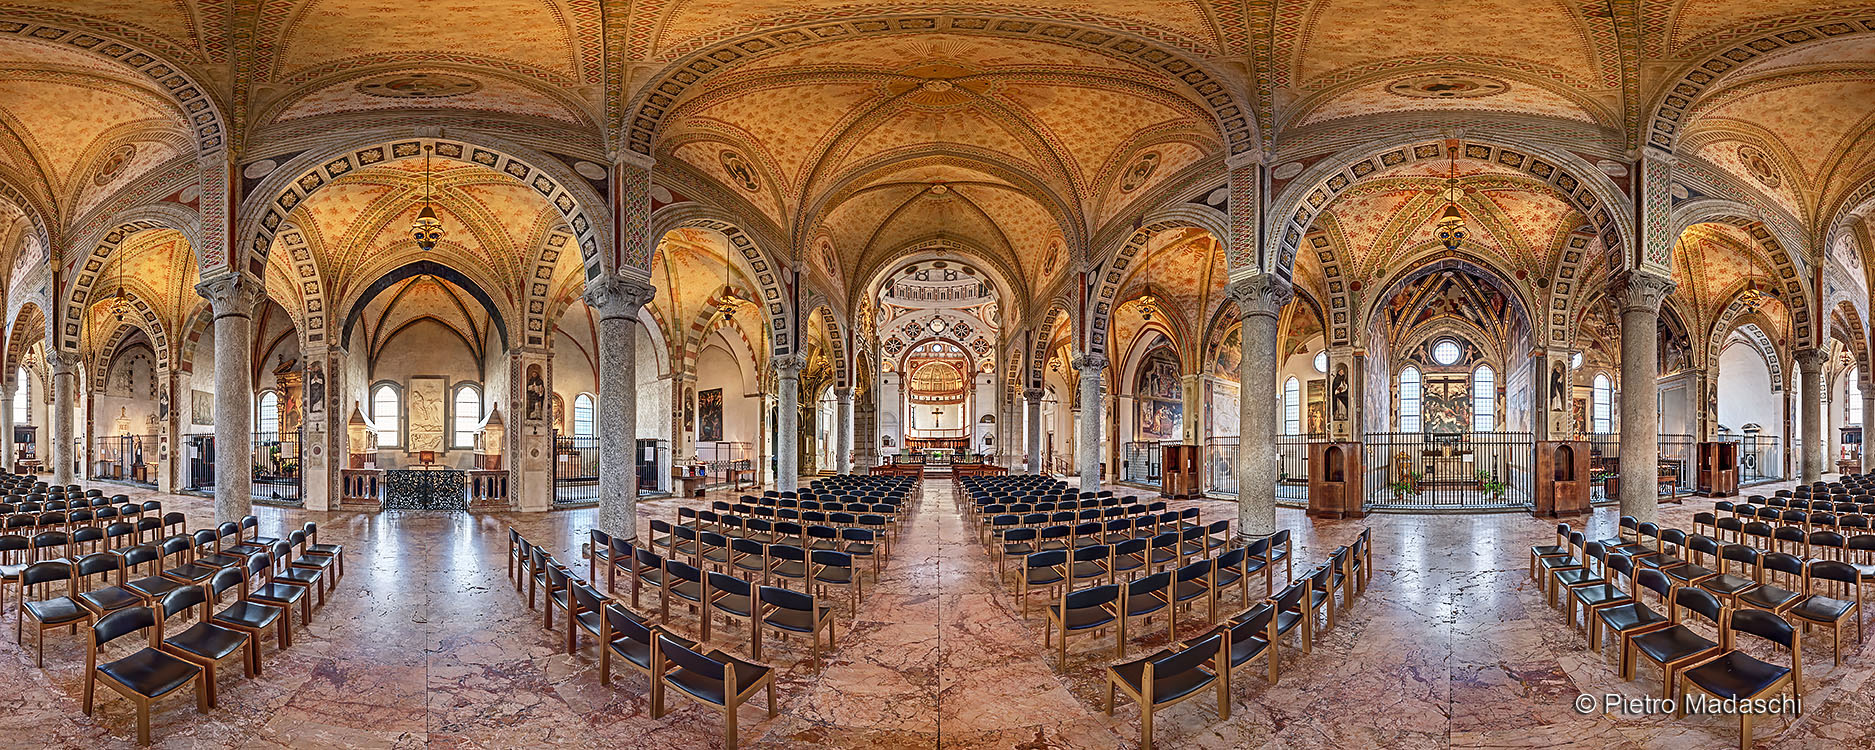 Holy Mary of Graces: the beautiful nave in its Renaissance style